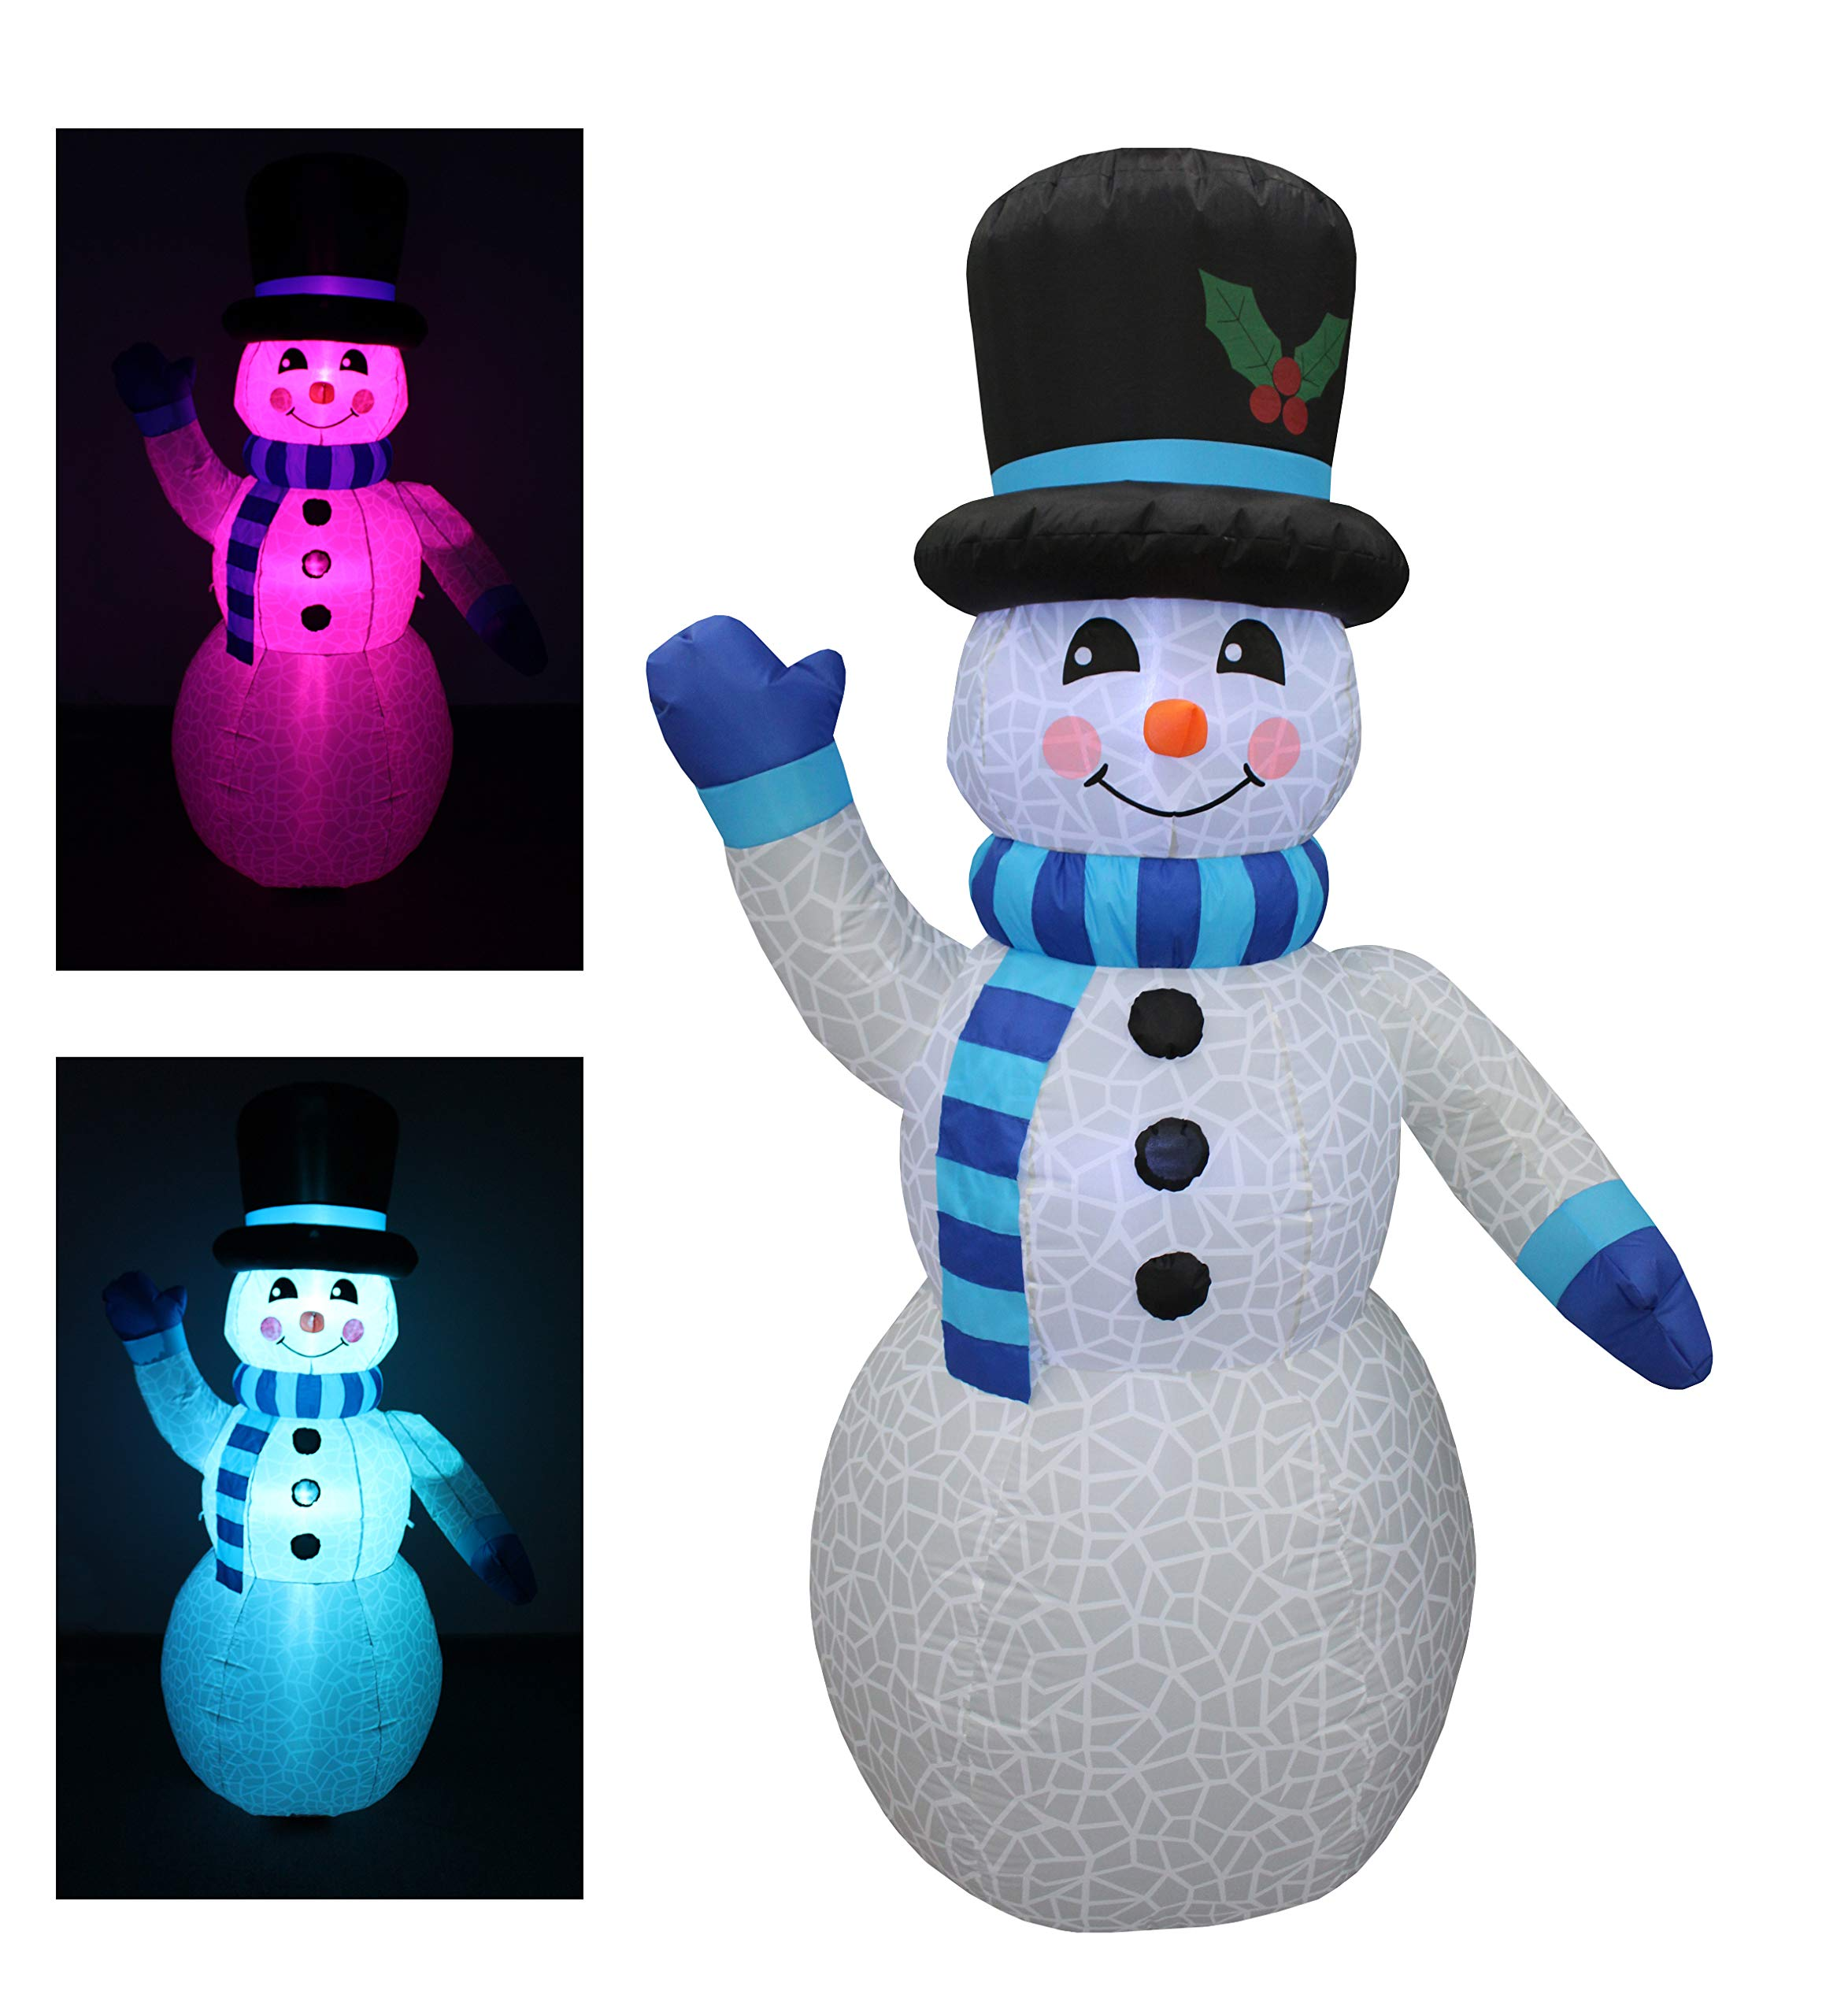 BZB Goods 6 Foot Tall Christmas Inflatable Snowman Multi Color LED Lights Decor Outdoor Indoor Holiday Decorations, Blow up LED Lighted Christmas Yard Decor, Giant Lawn Inflatable Home Family Outside by BZB Goods